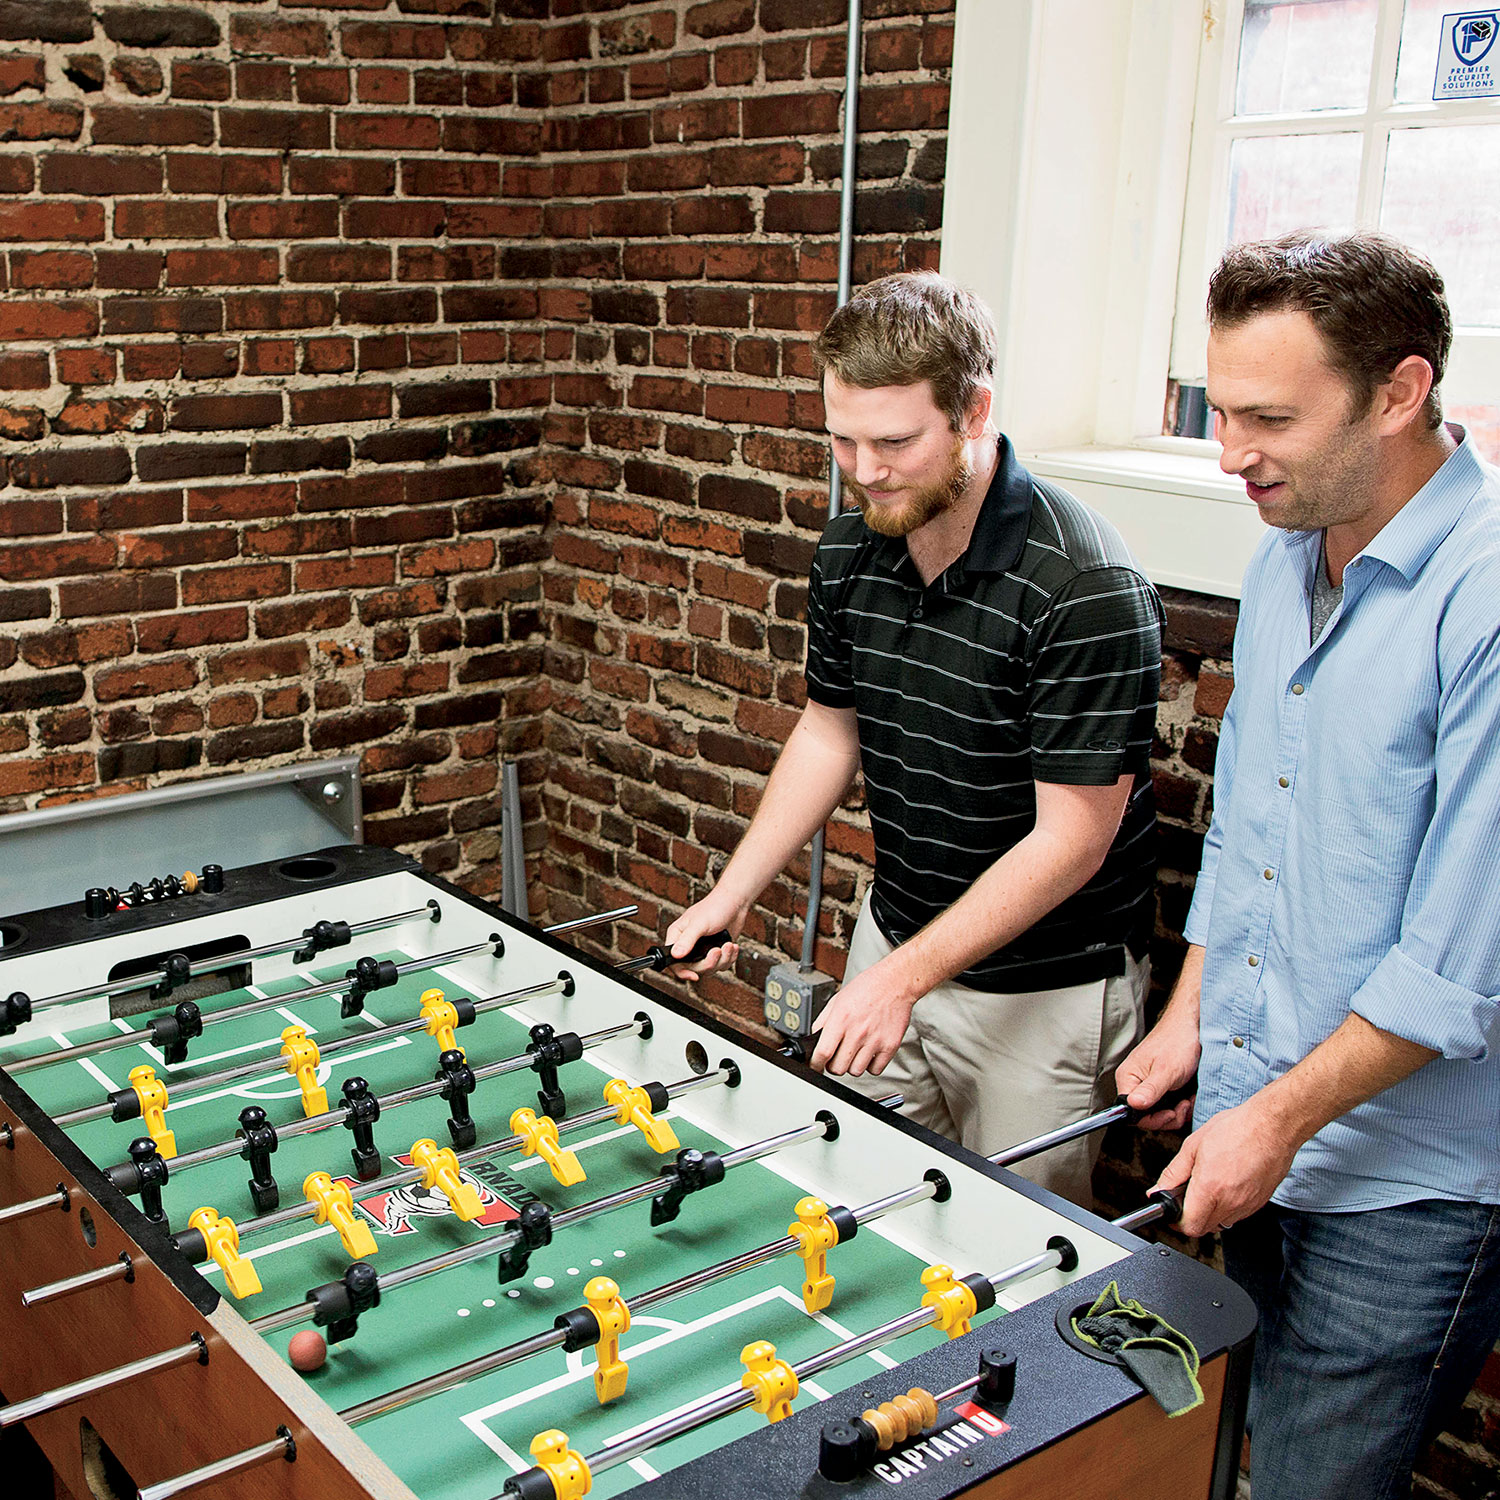 A COO Michael Farb takes a foosball break with CaptainU employees at the company's San Francisco office. Photograph by Randall Spriggs.